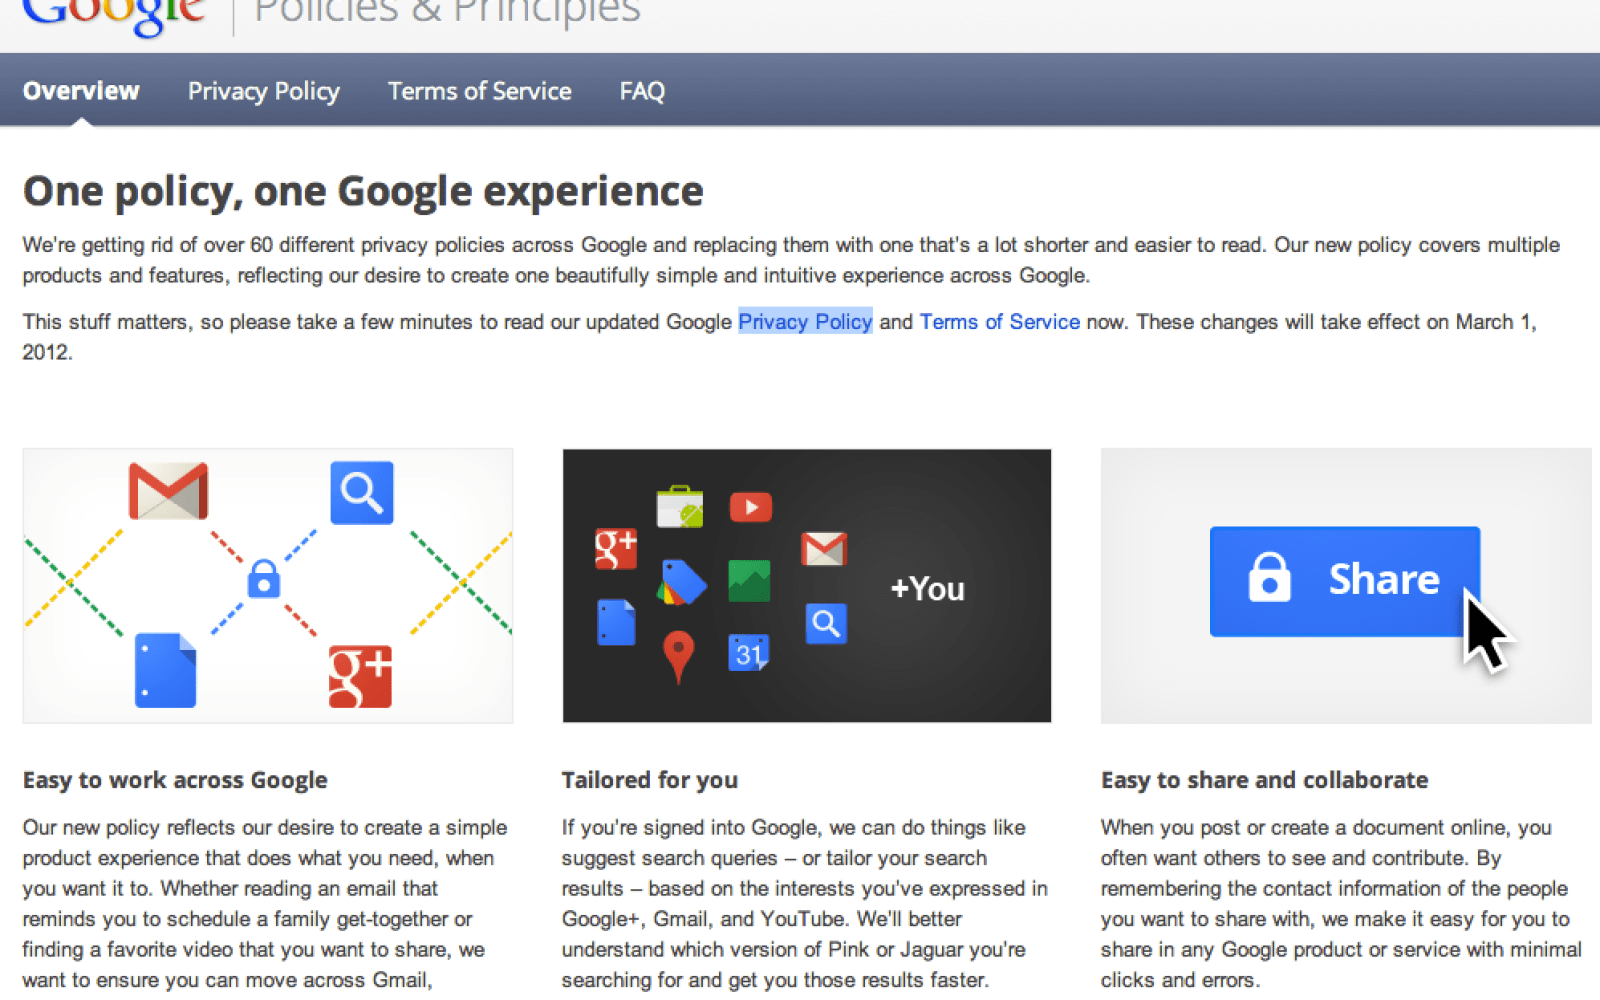 Google Compiles 60 Documents Into One Privacy Policy For One Google